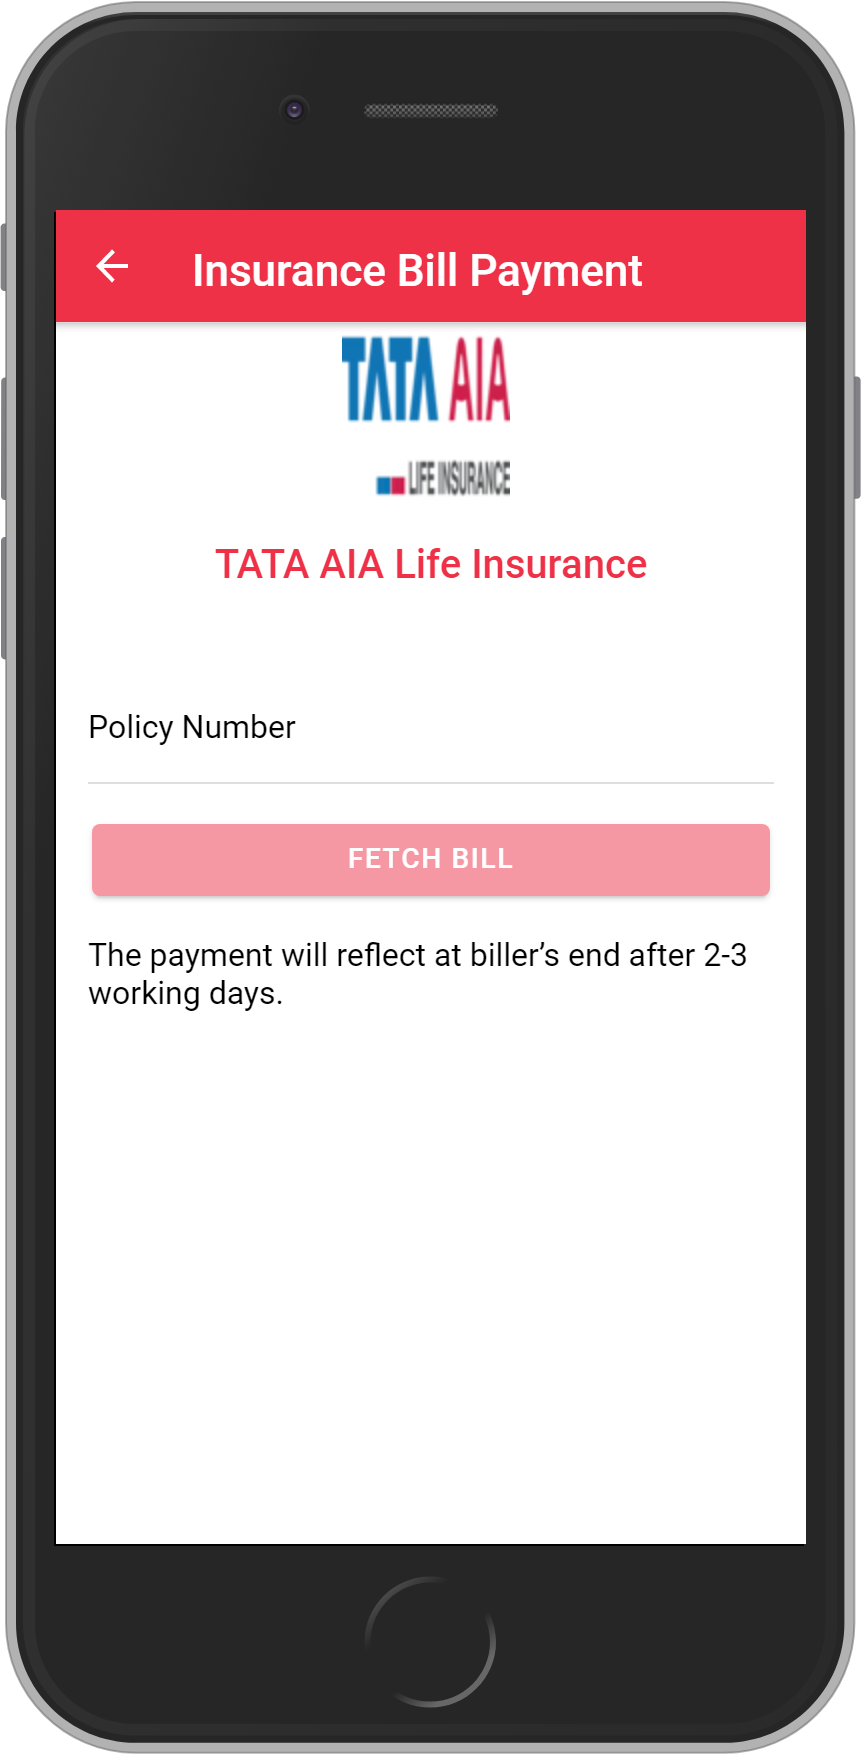 Get UNLIMITED <b>0.10%</b> CASHBACK on TATA AIA Life Insurance Payment.